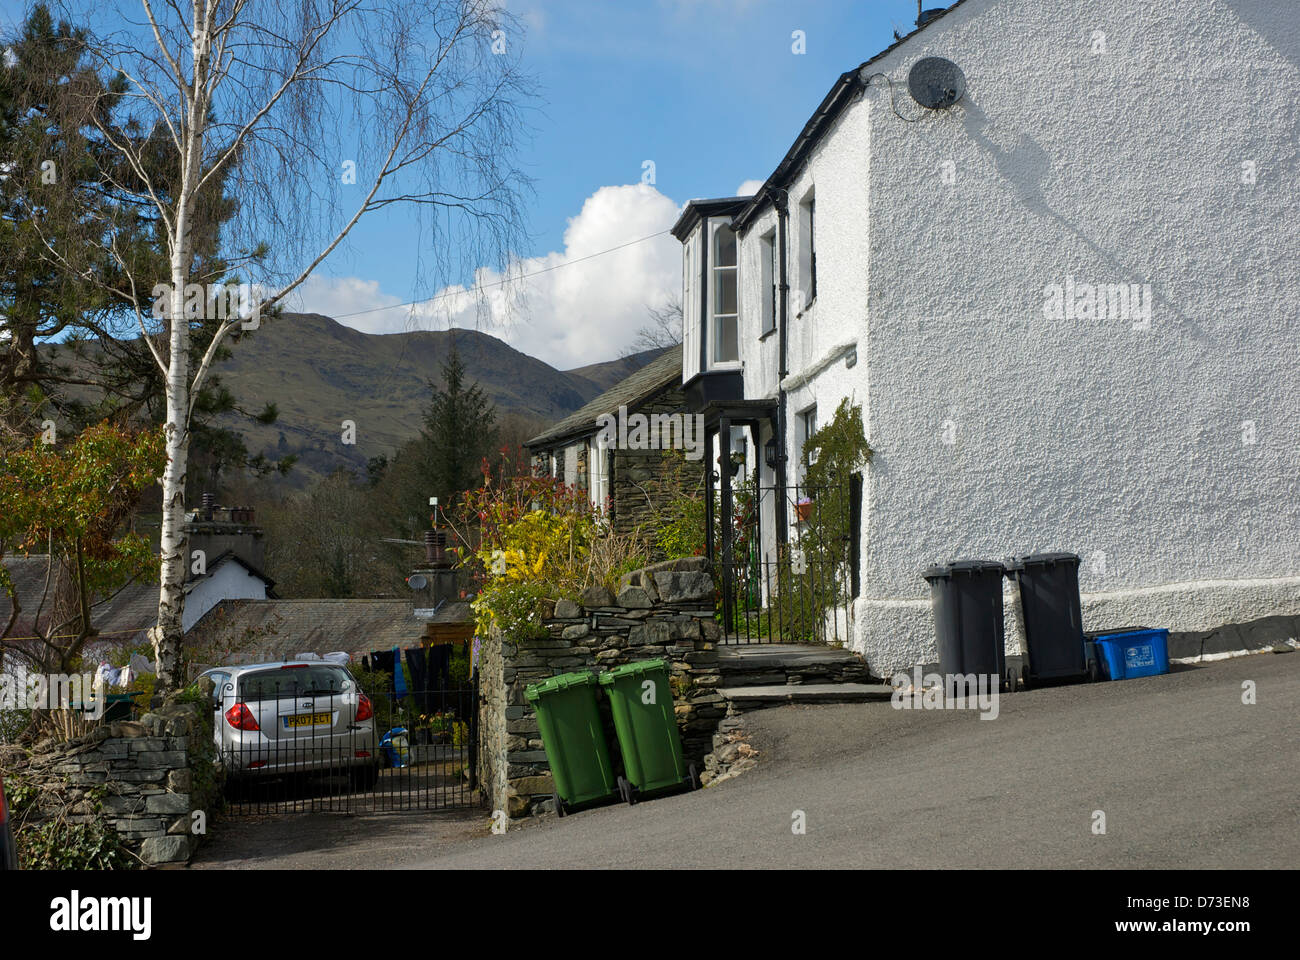 Recycling bins lined up outside a house in Ambleside, Cumbria, England UK Stock Photo